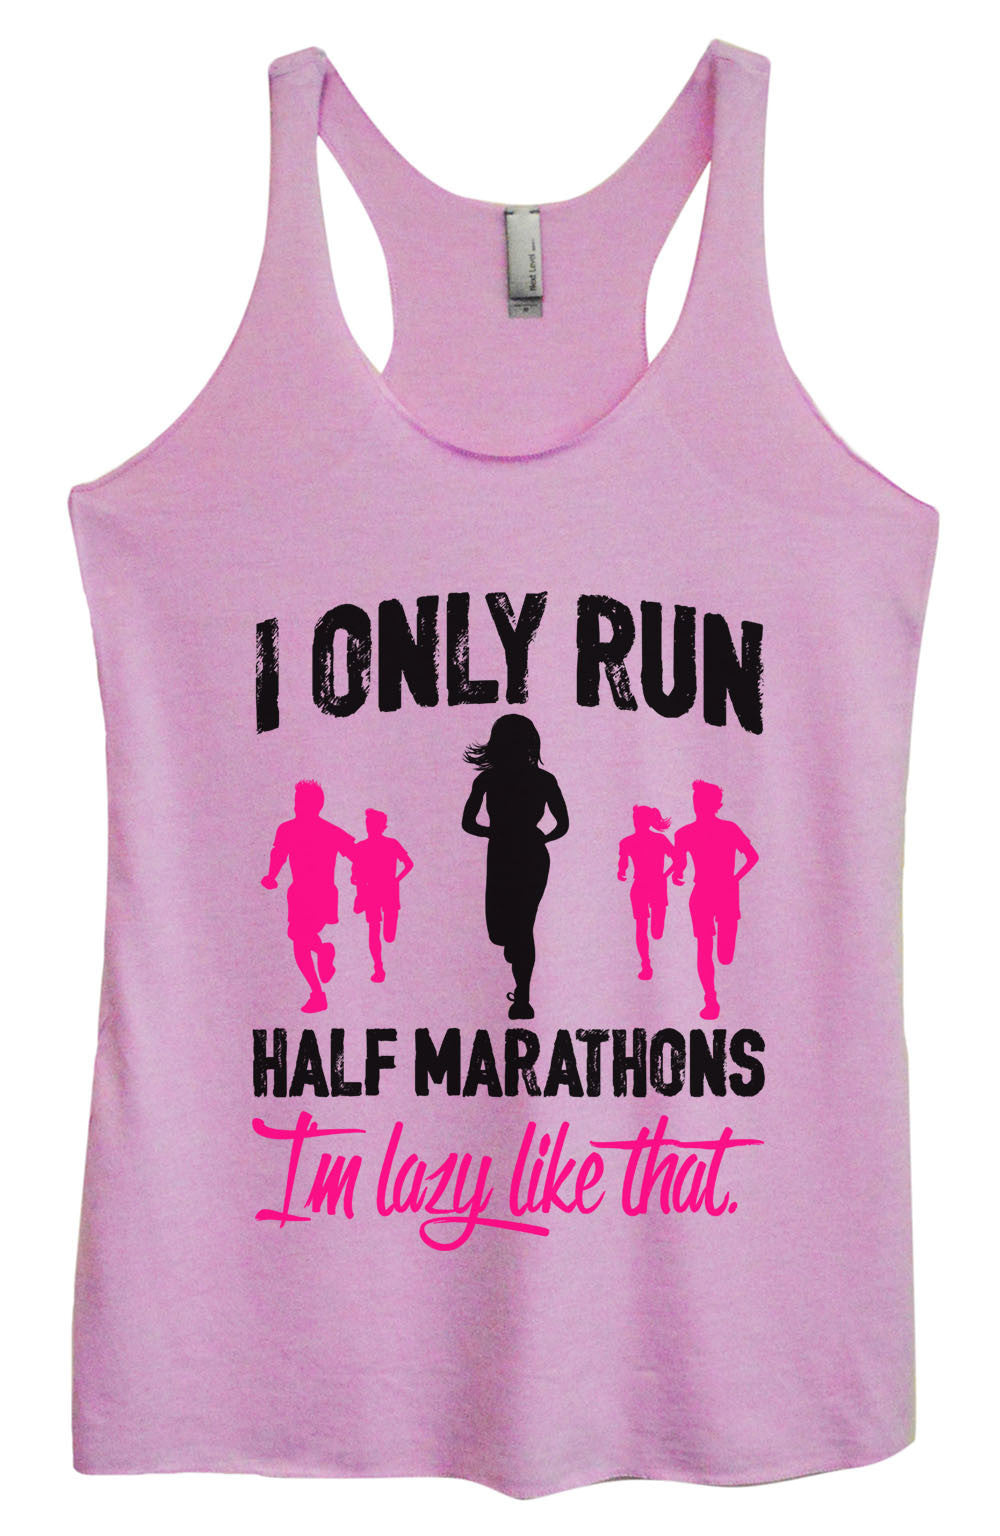 Womens Fashion Triblend Tank Top - I Only Run Half Marathons I'm Lazy Like That. - Tri-1489 - Funny Shirts Tank Tops Burnouts and Triblends  - 3